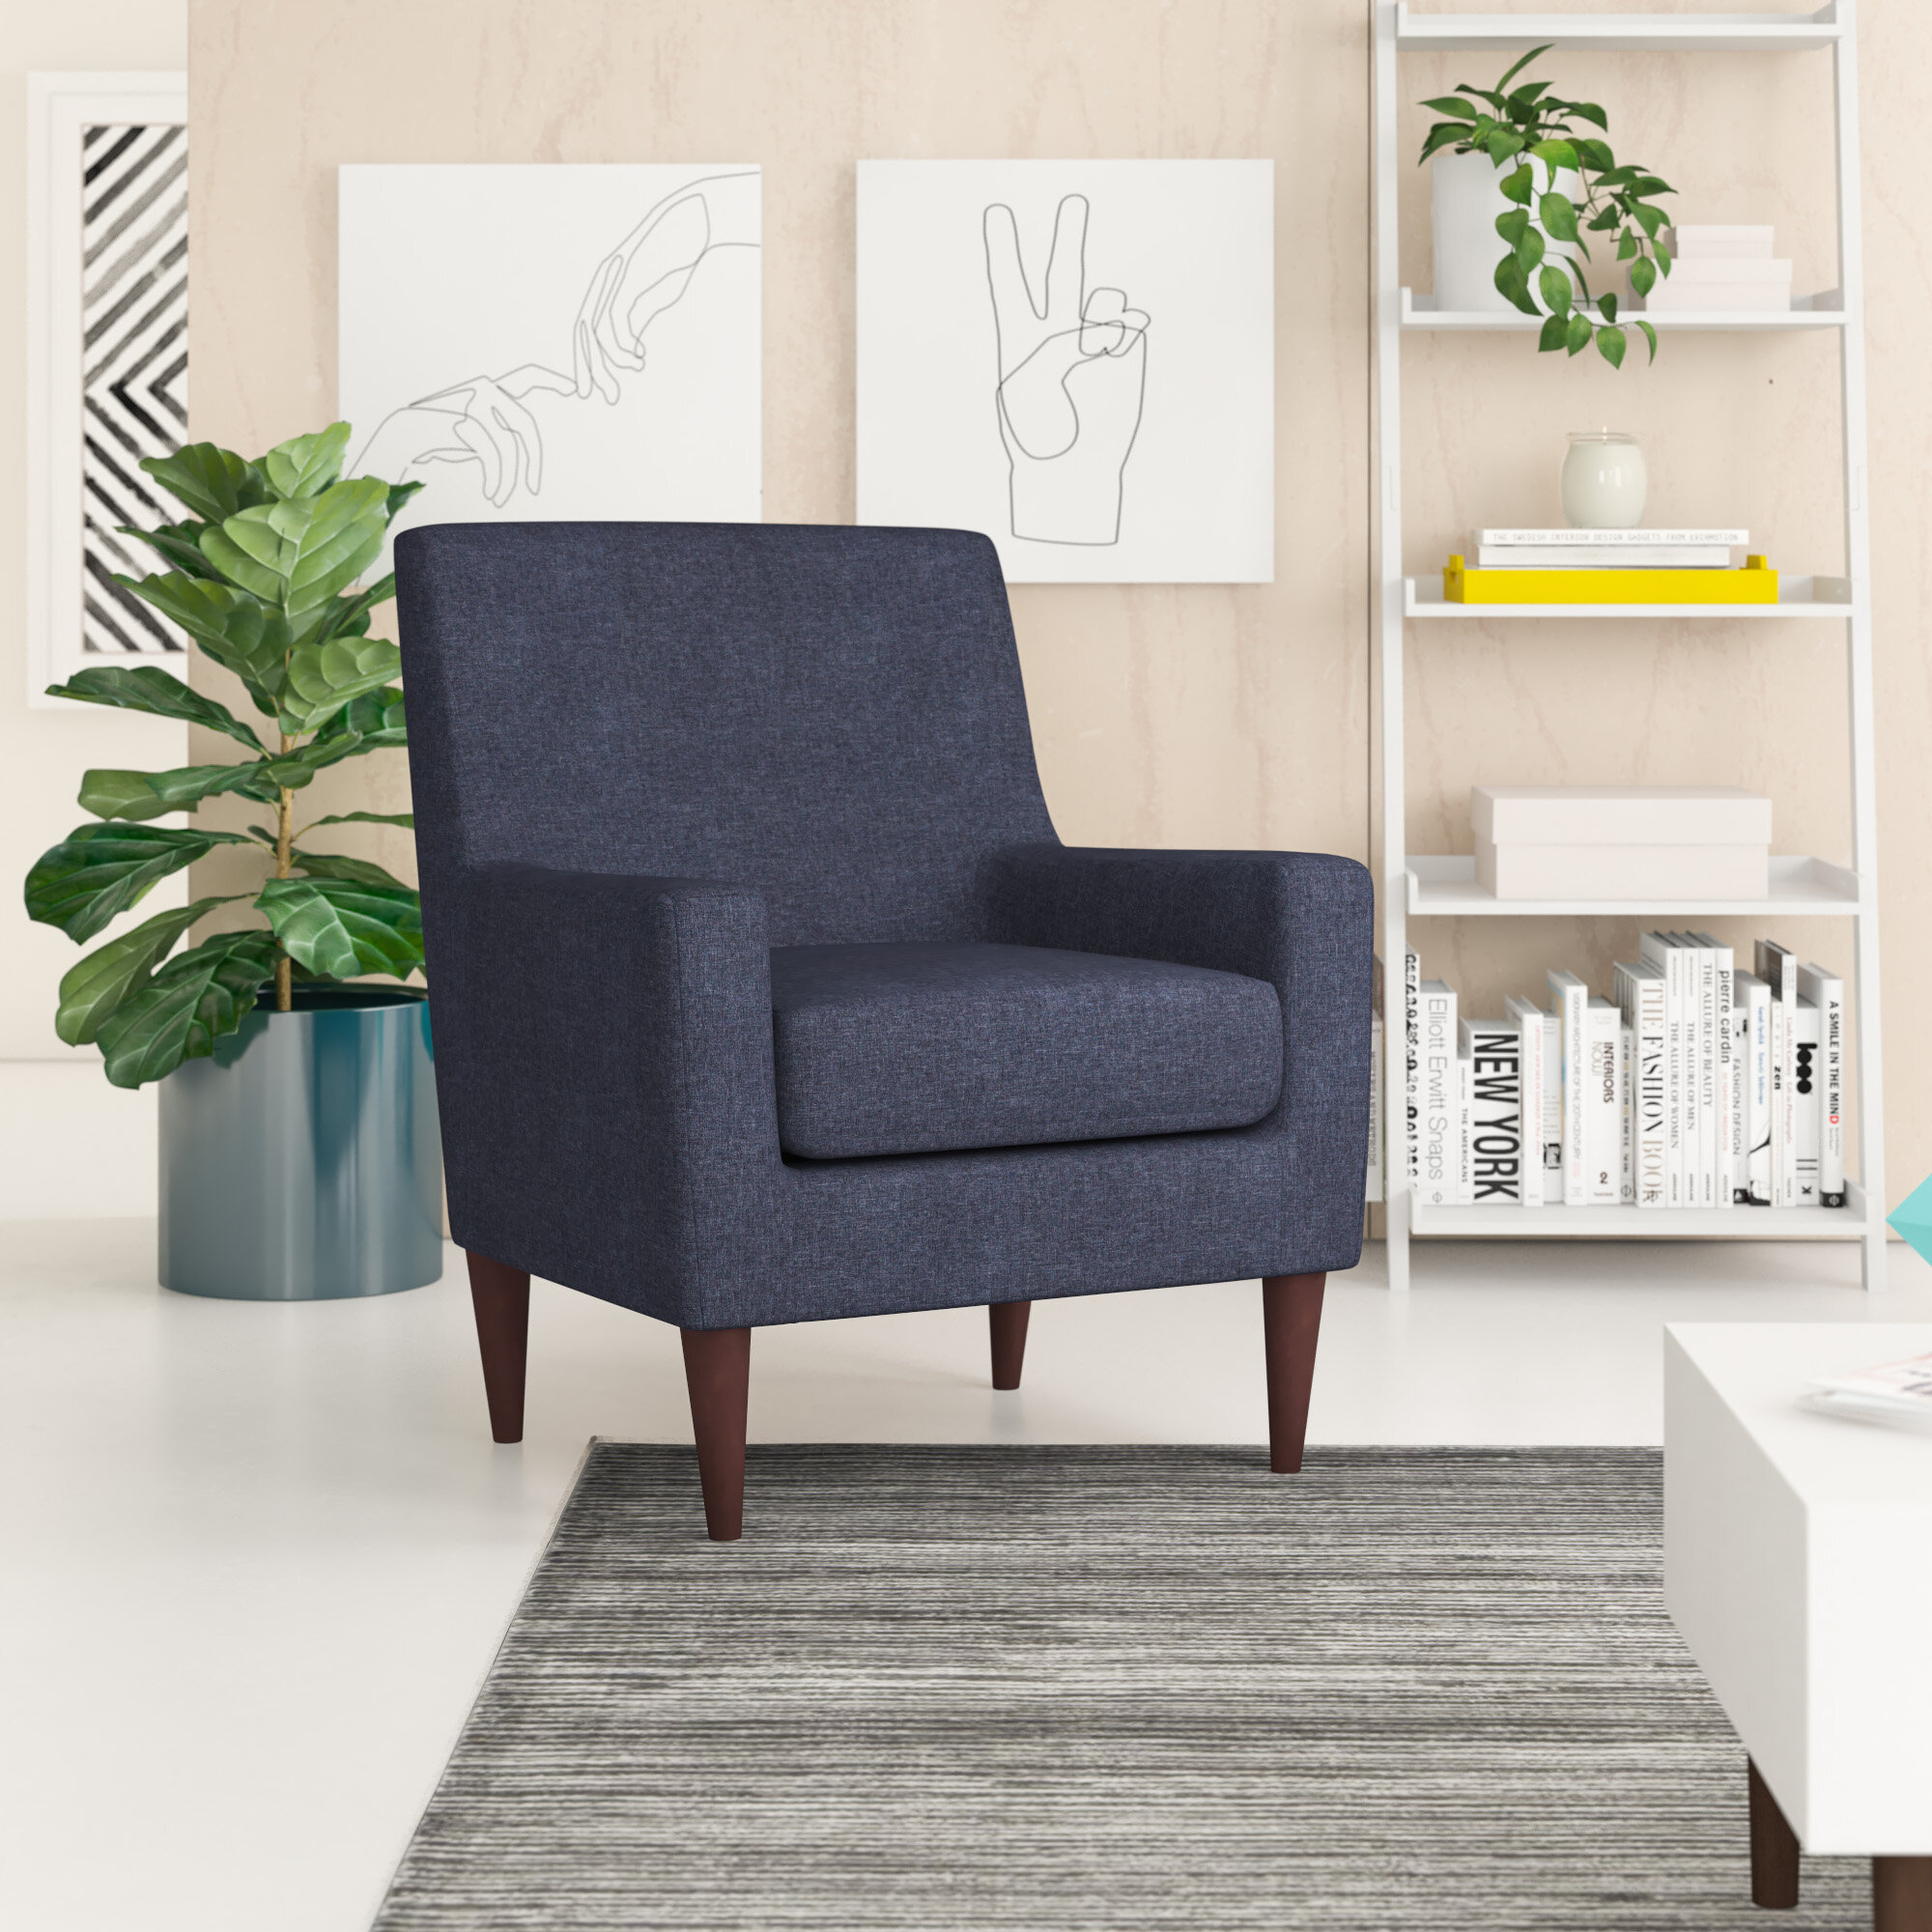 Armchairs | Wayfair In Oglesby Armchairs (View 15 of 15)